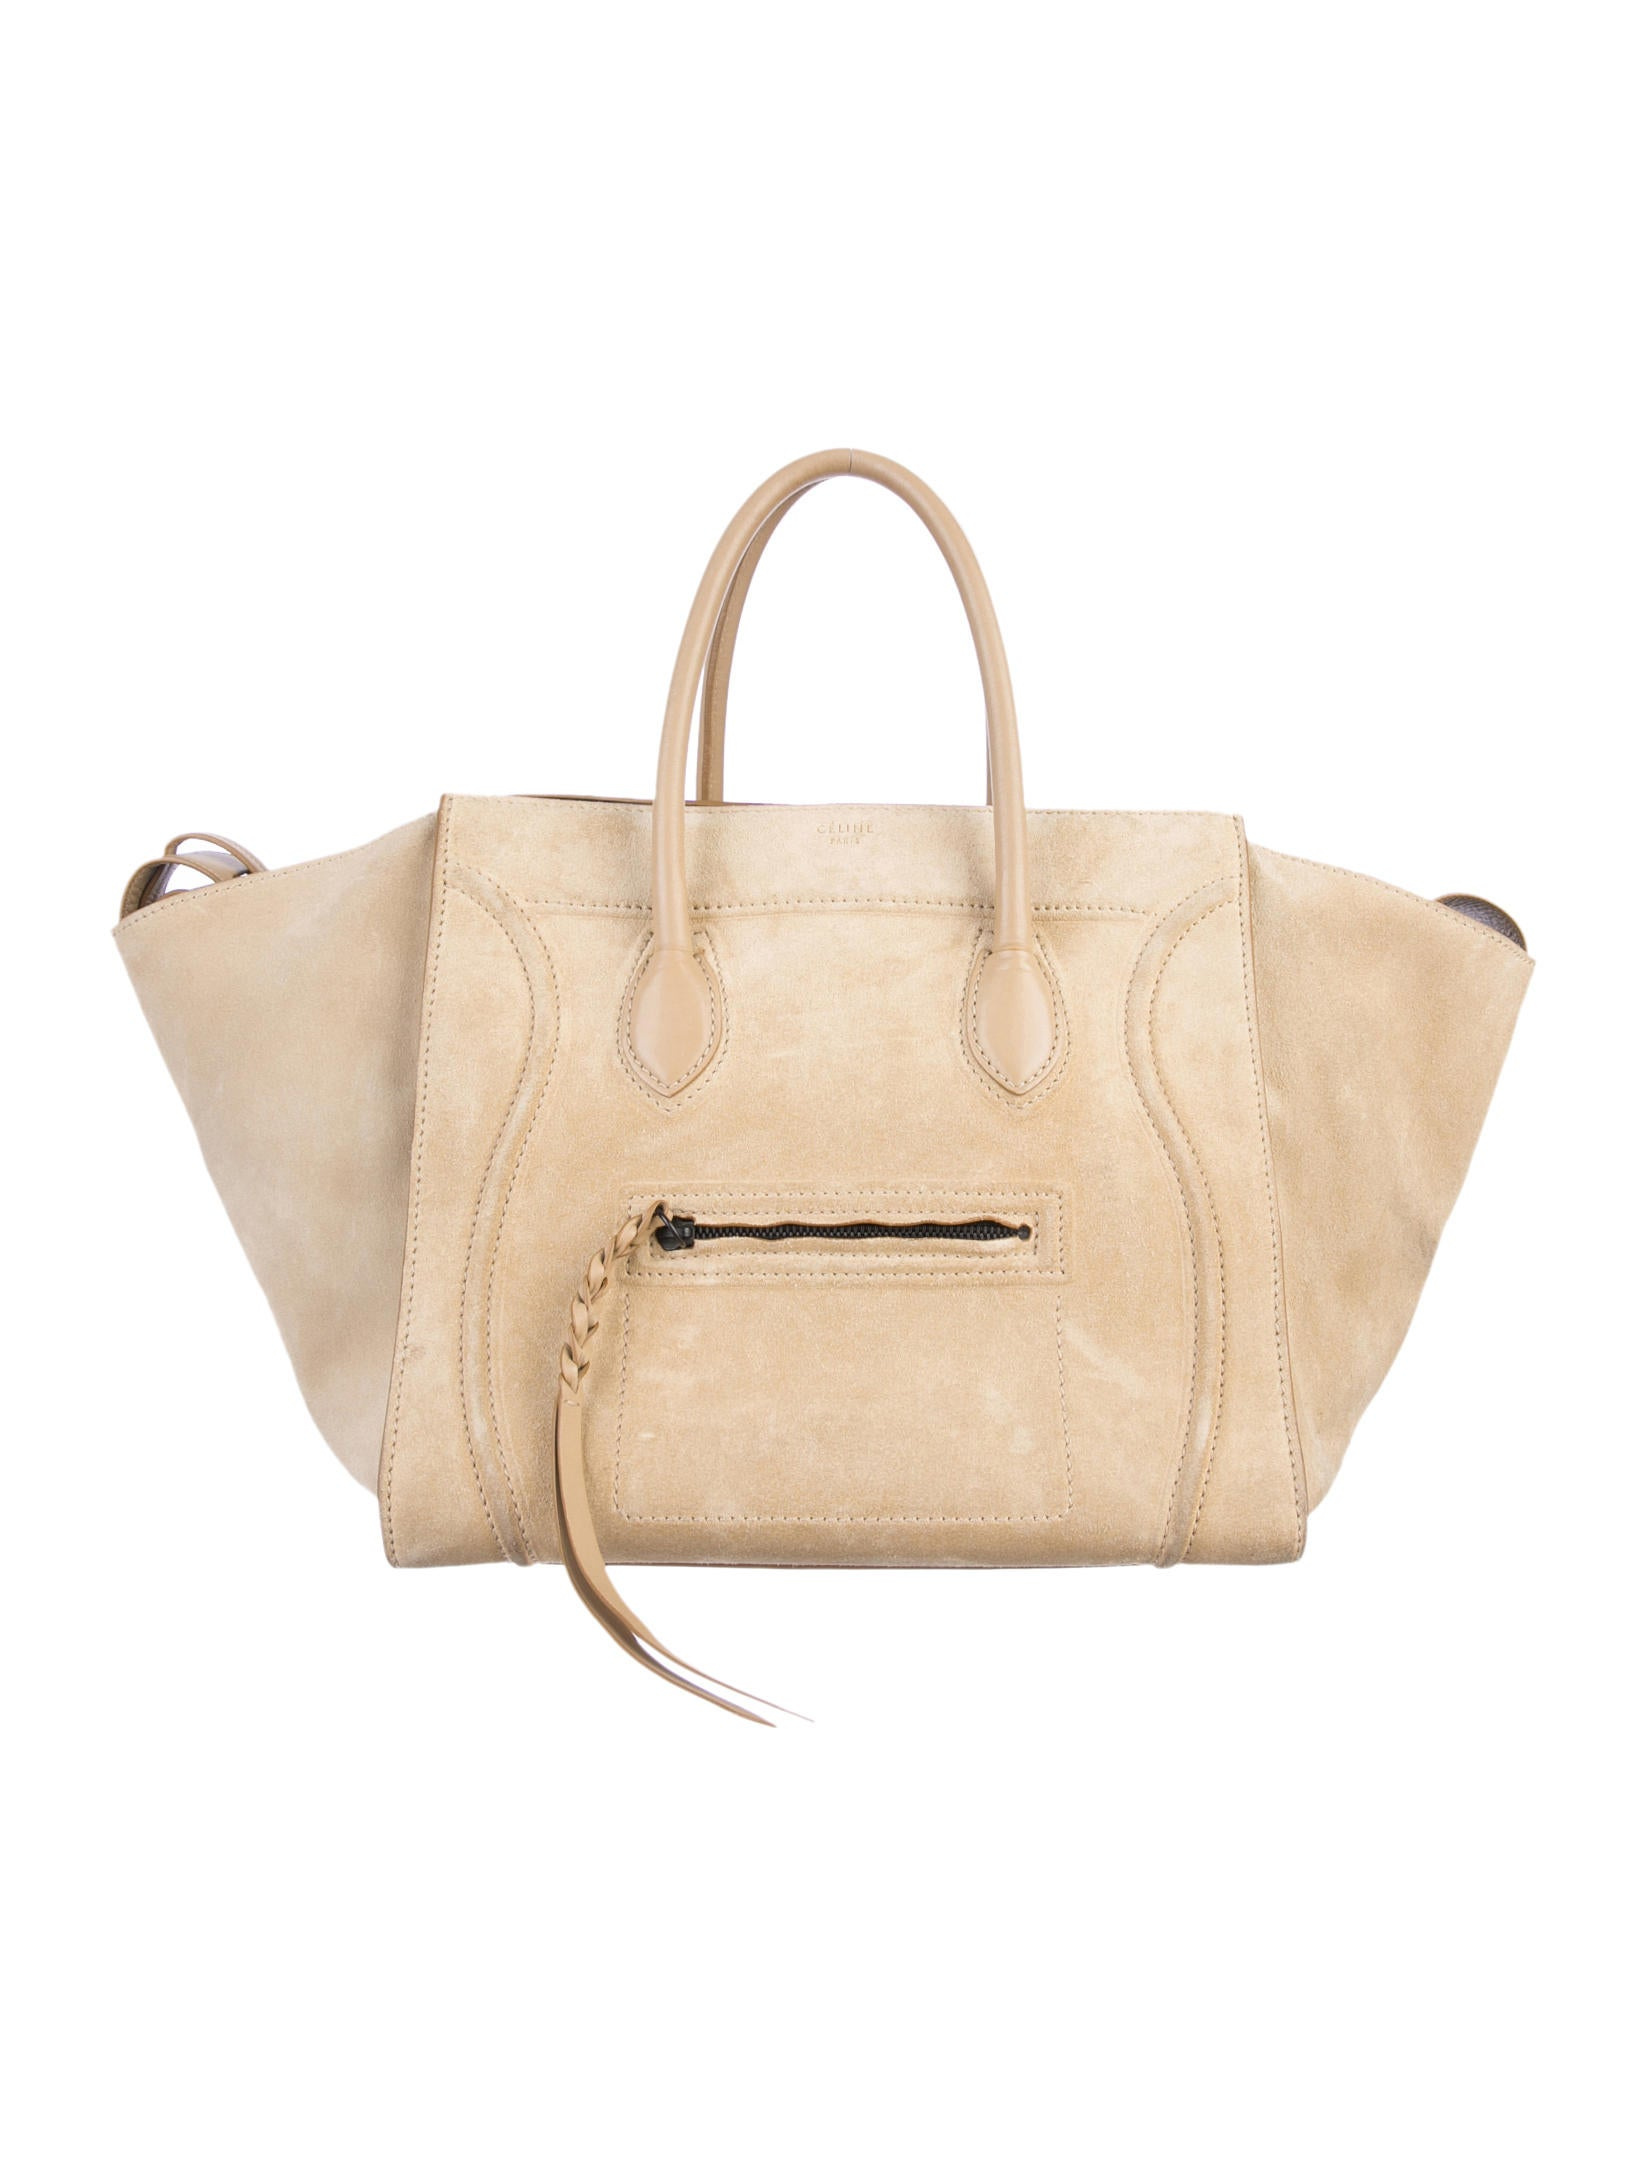 celine bag for less - C��line Suede Phantom Tote - Handbags - CEL24346 | The RealReal